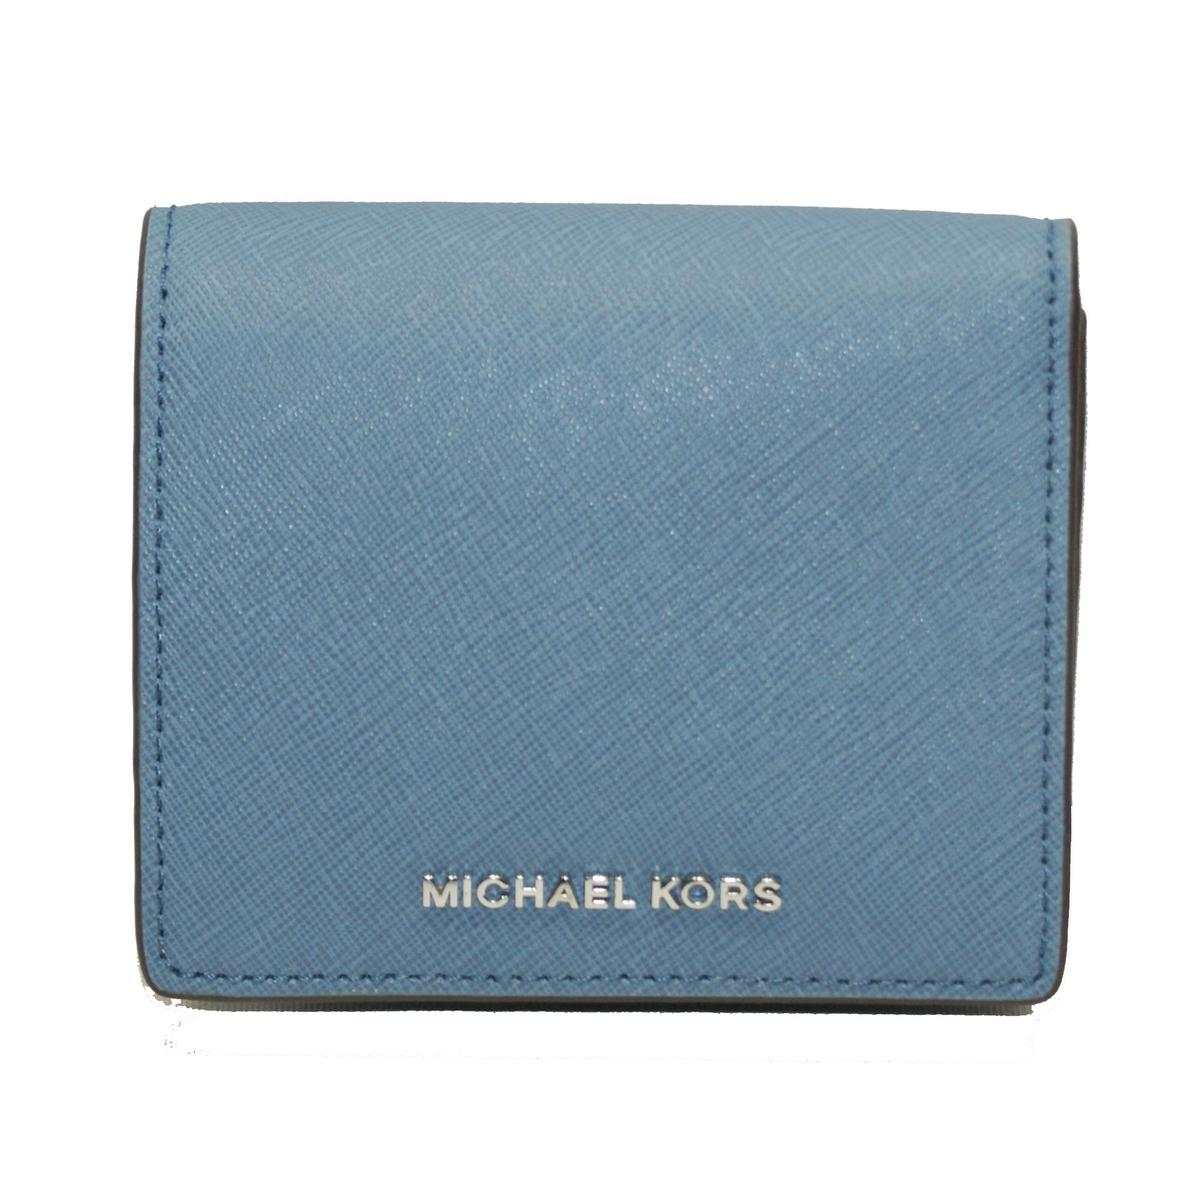 854cb5ad8ab9 Home · Michael Kors · Jet Set Travel Carryall Card Case Leather Small Wallet  Denim. CLICK THUMBNAIL TO ZOOM. Found ...